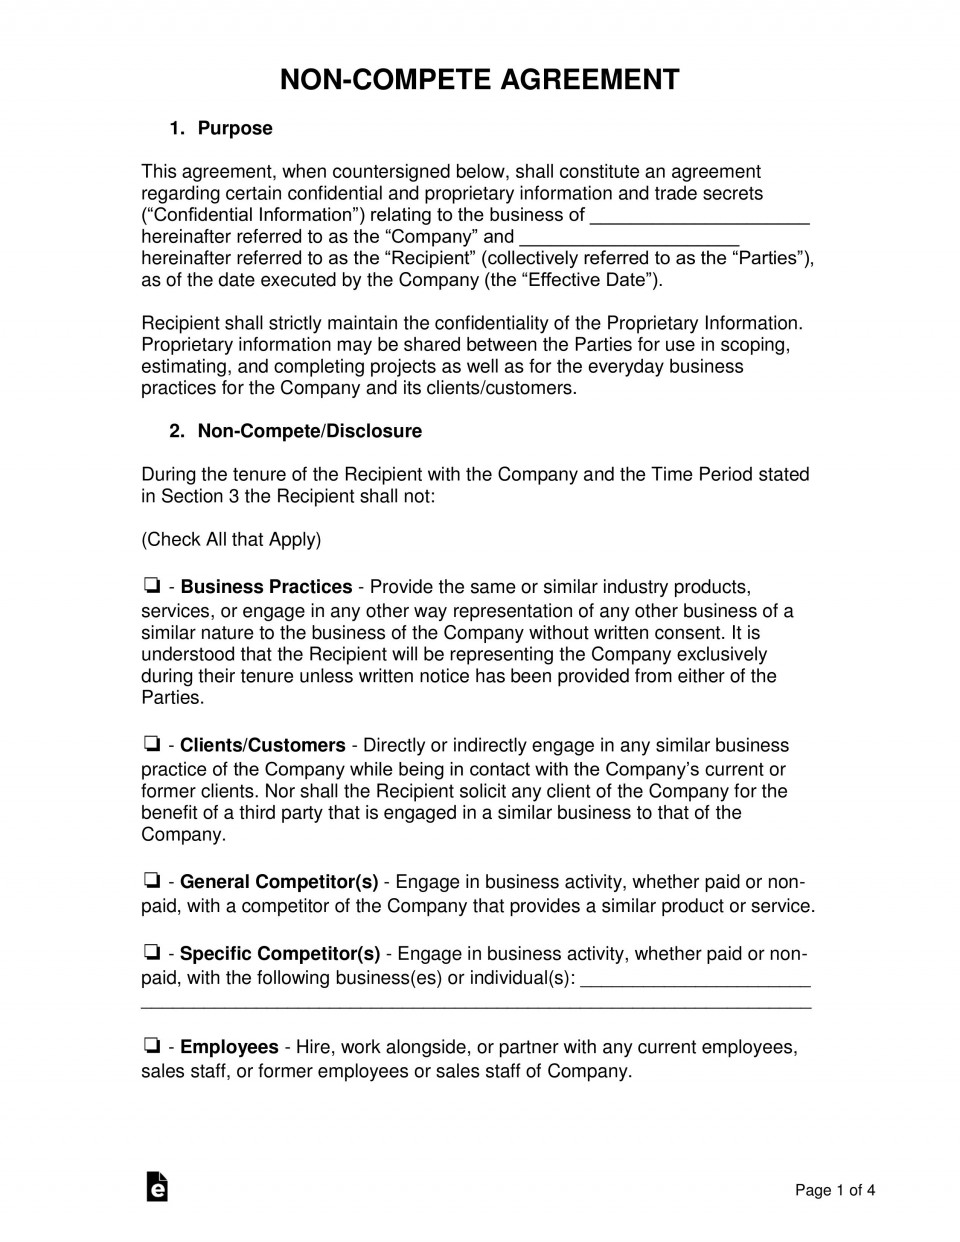 005 Magnificent Employee Non Compete Agreement Template Image  Free Confidentiality Non-compete Disclosure960